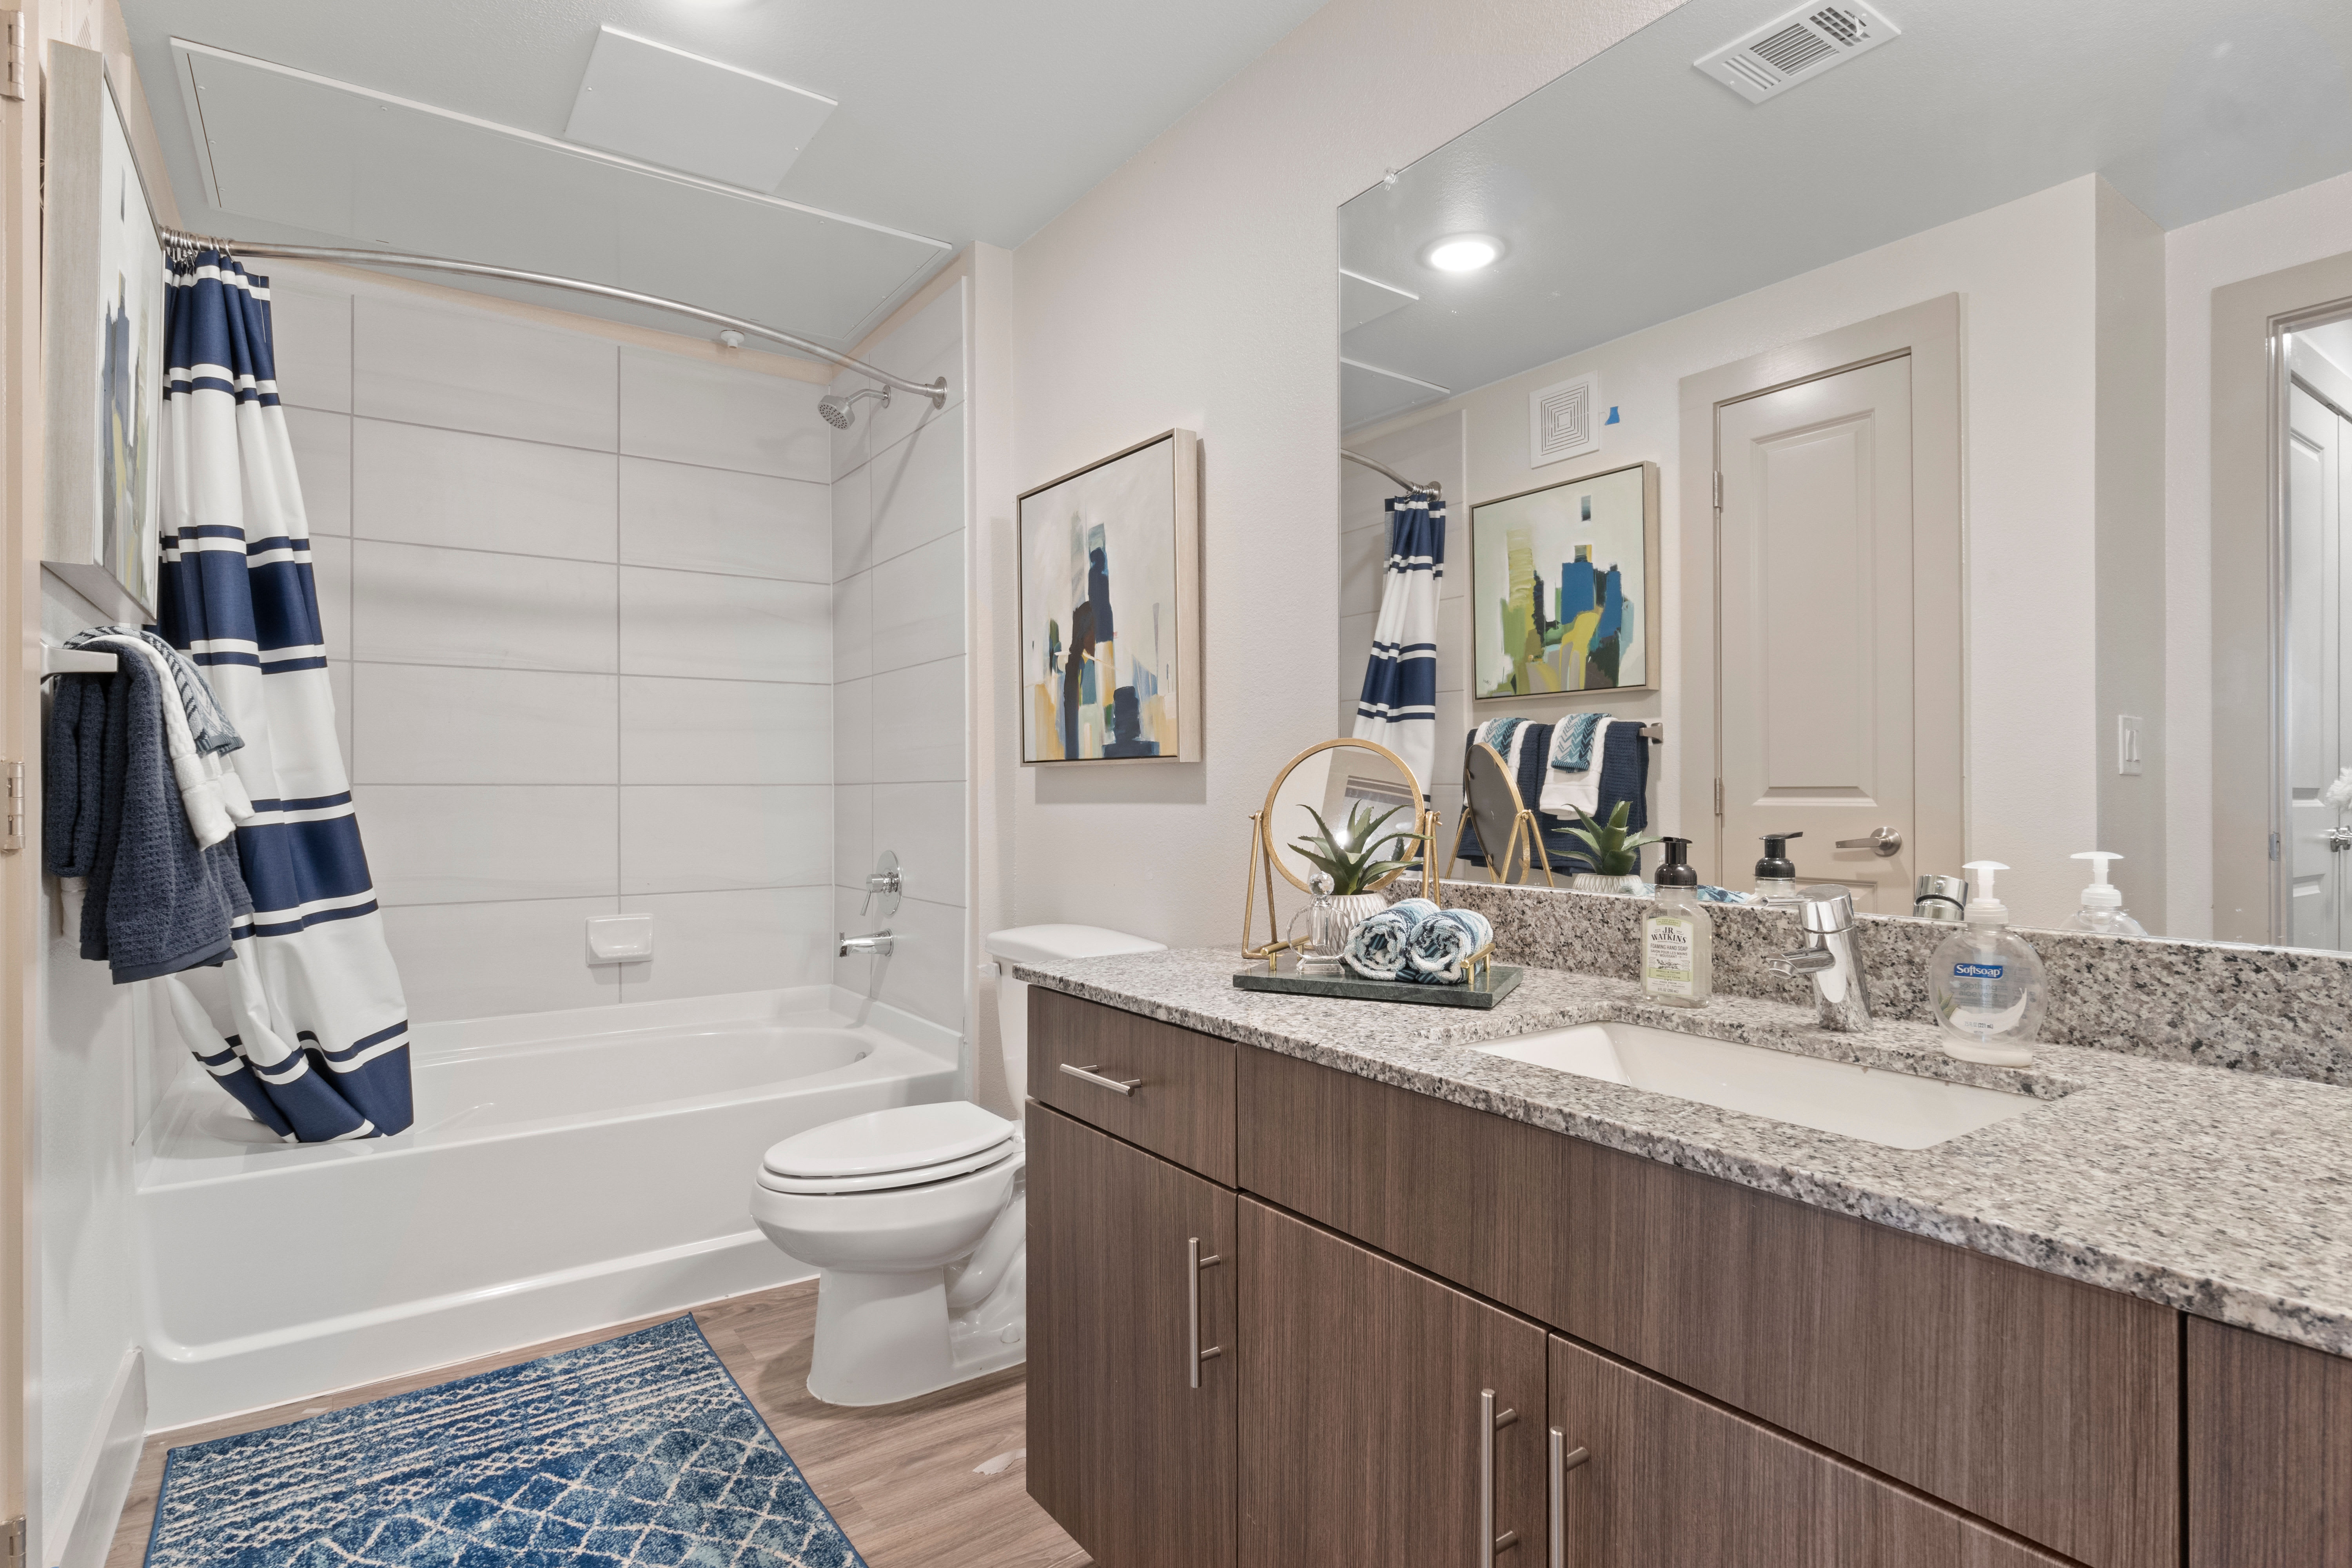 Bathroom with a large vanity at McCarty Commons in San Marcos, Texas